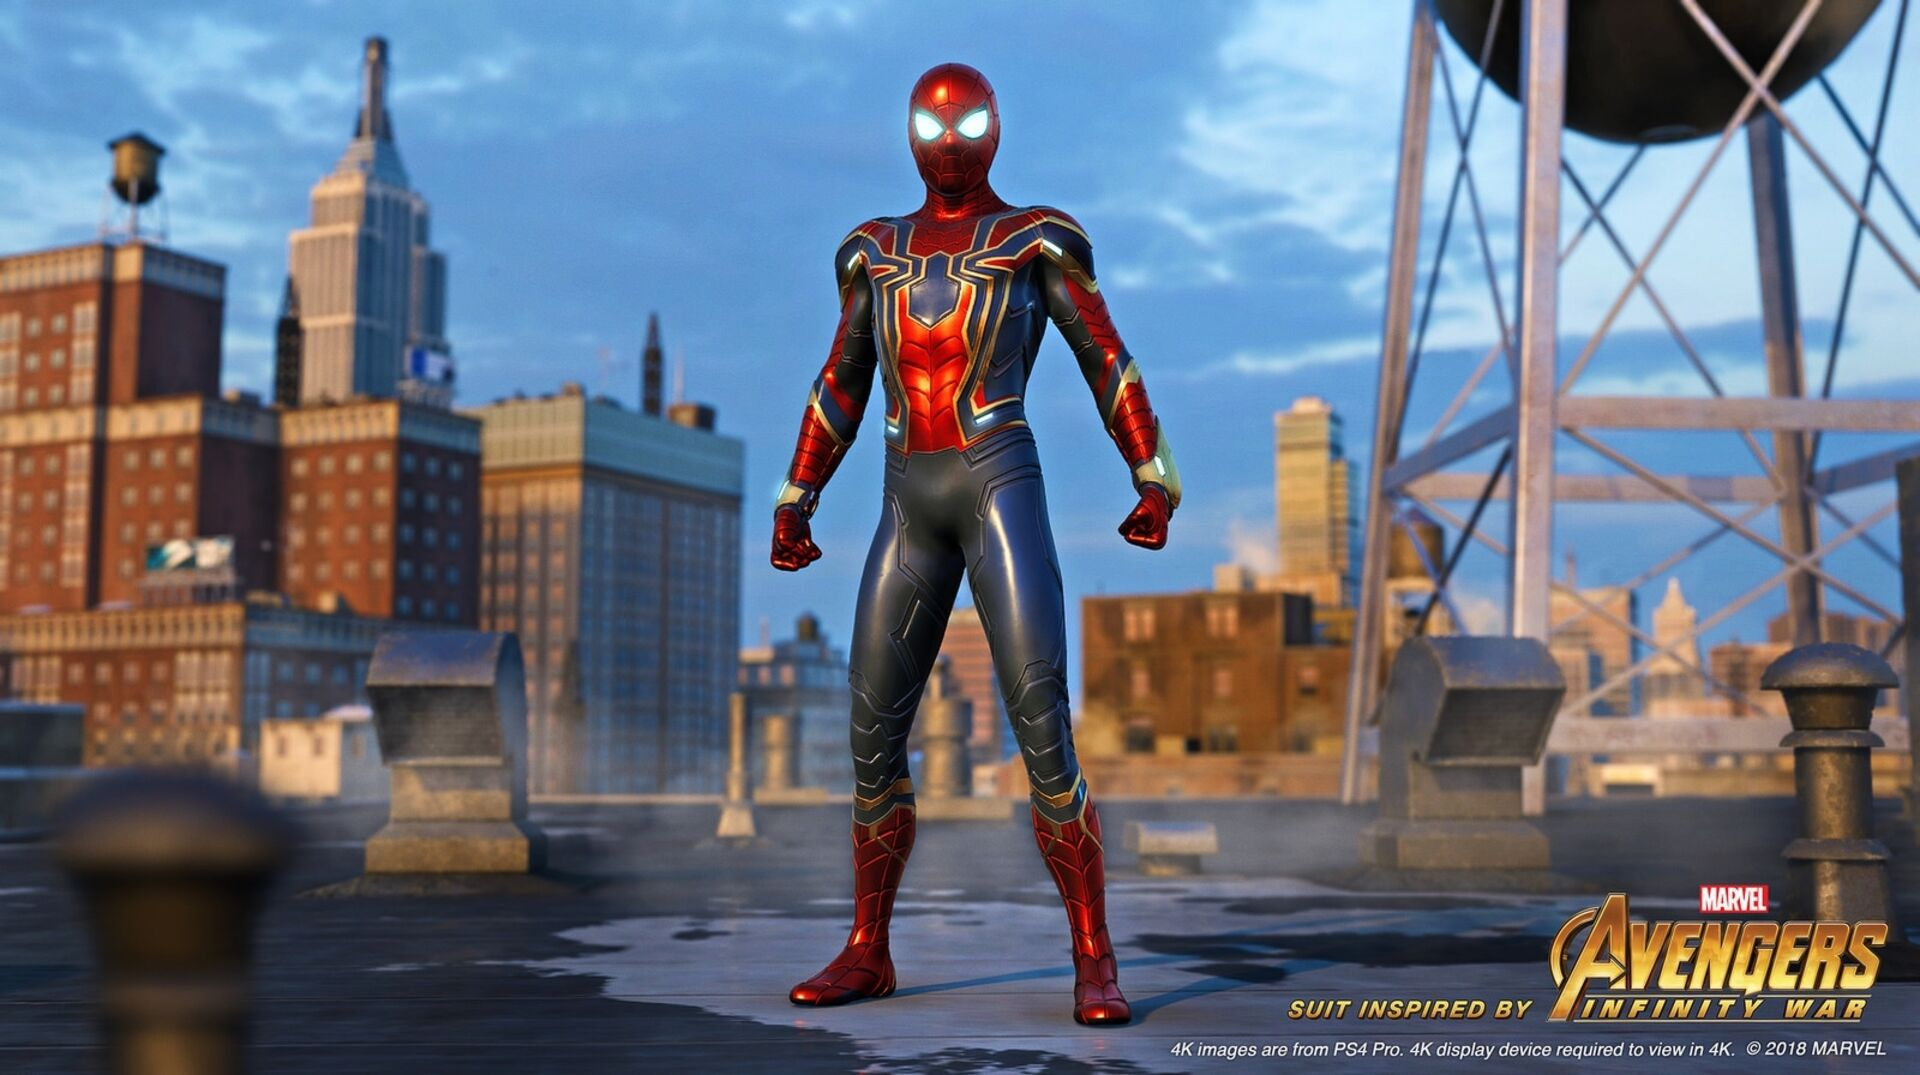 Spider-Man PS4 gets the cool Iron Spider suit from Avengers